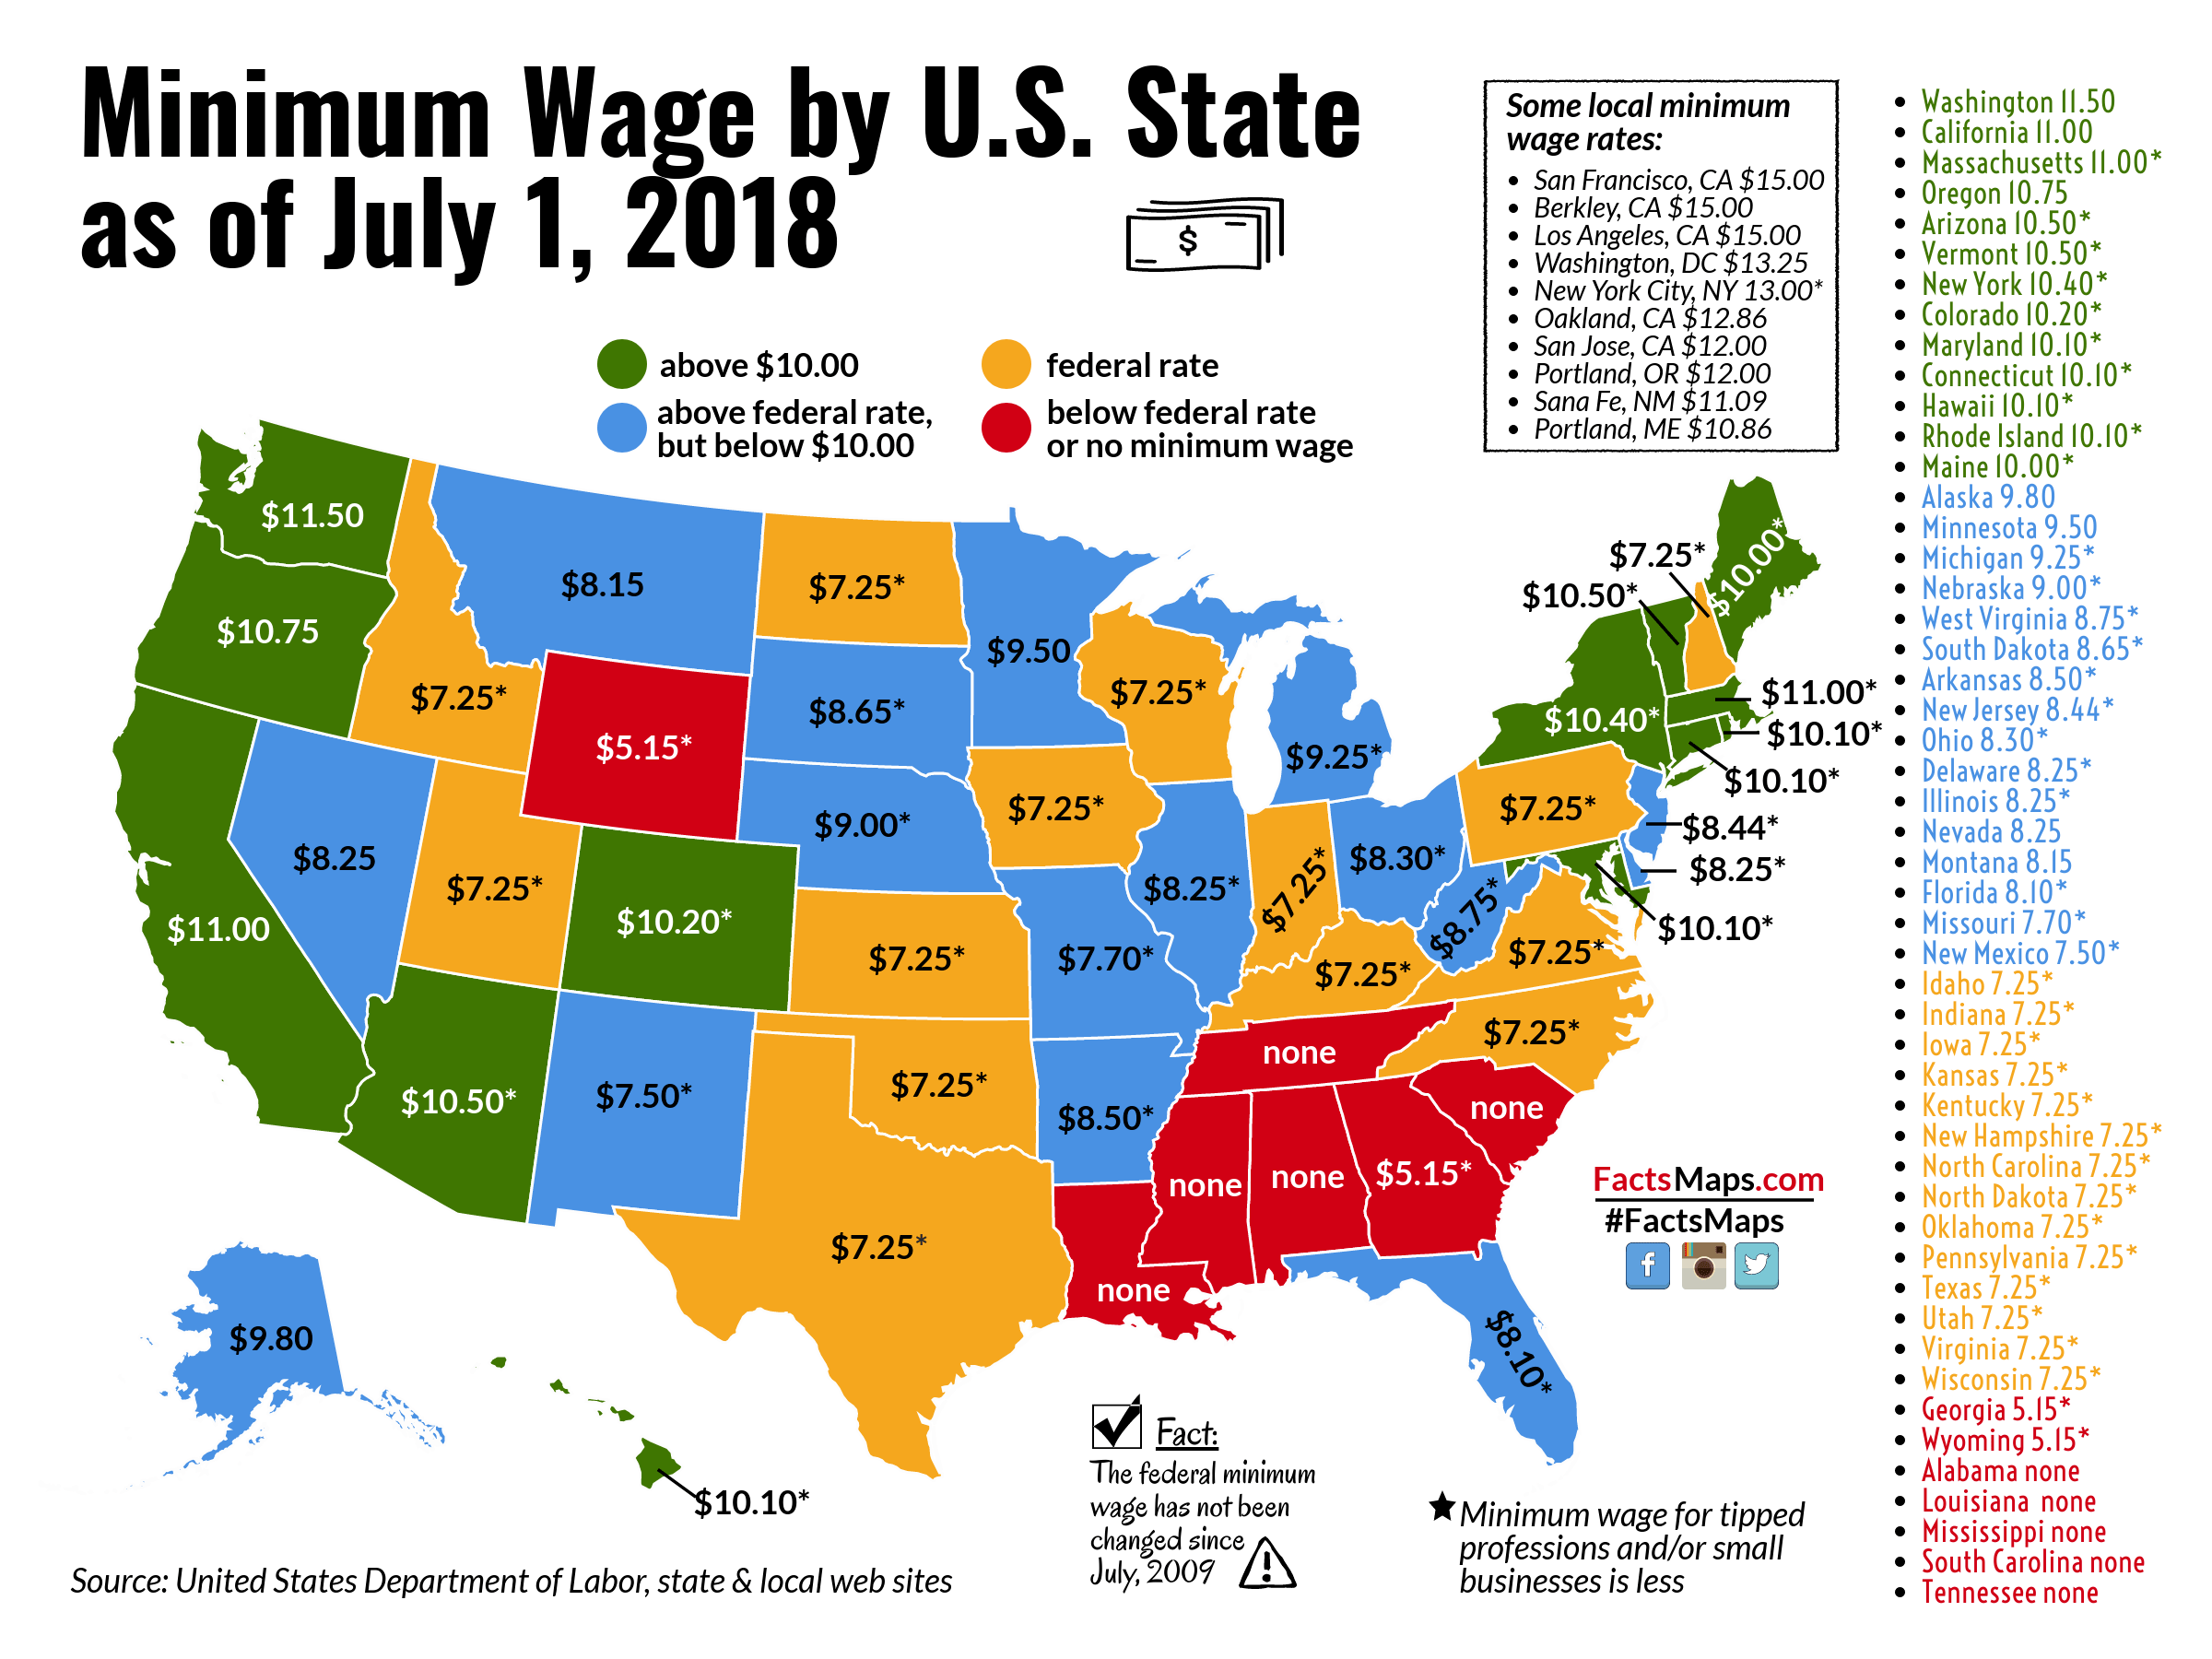 Minimum Wage by U.S. State as of July 1, 2018   FactsMaps